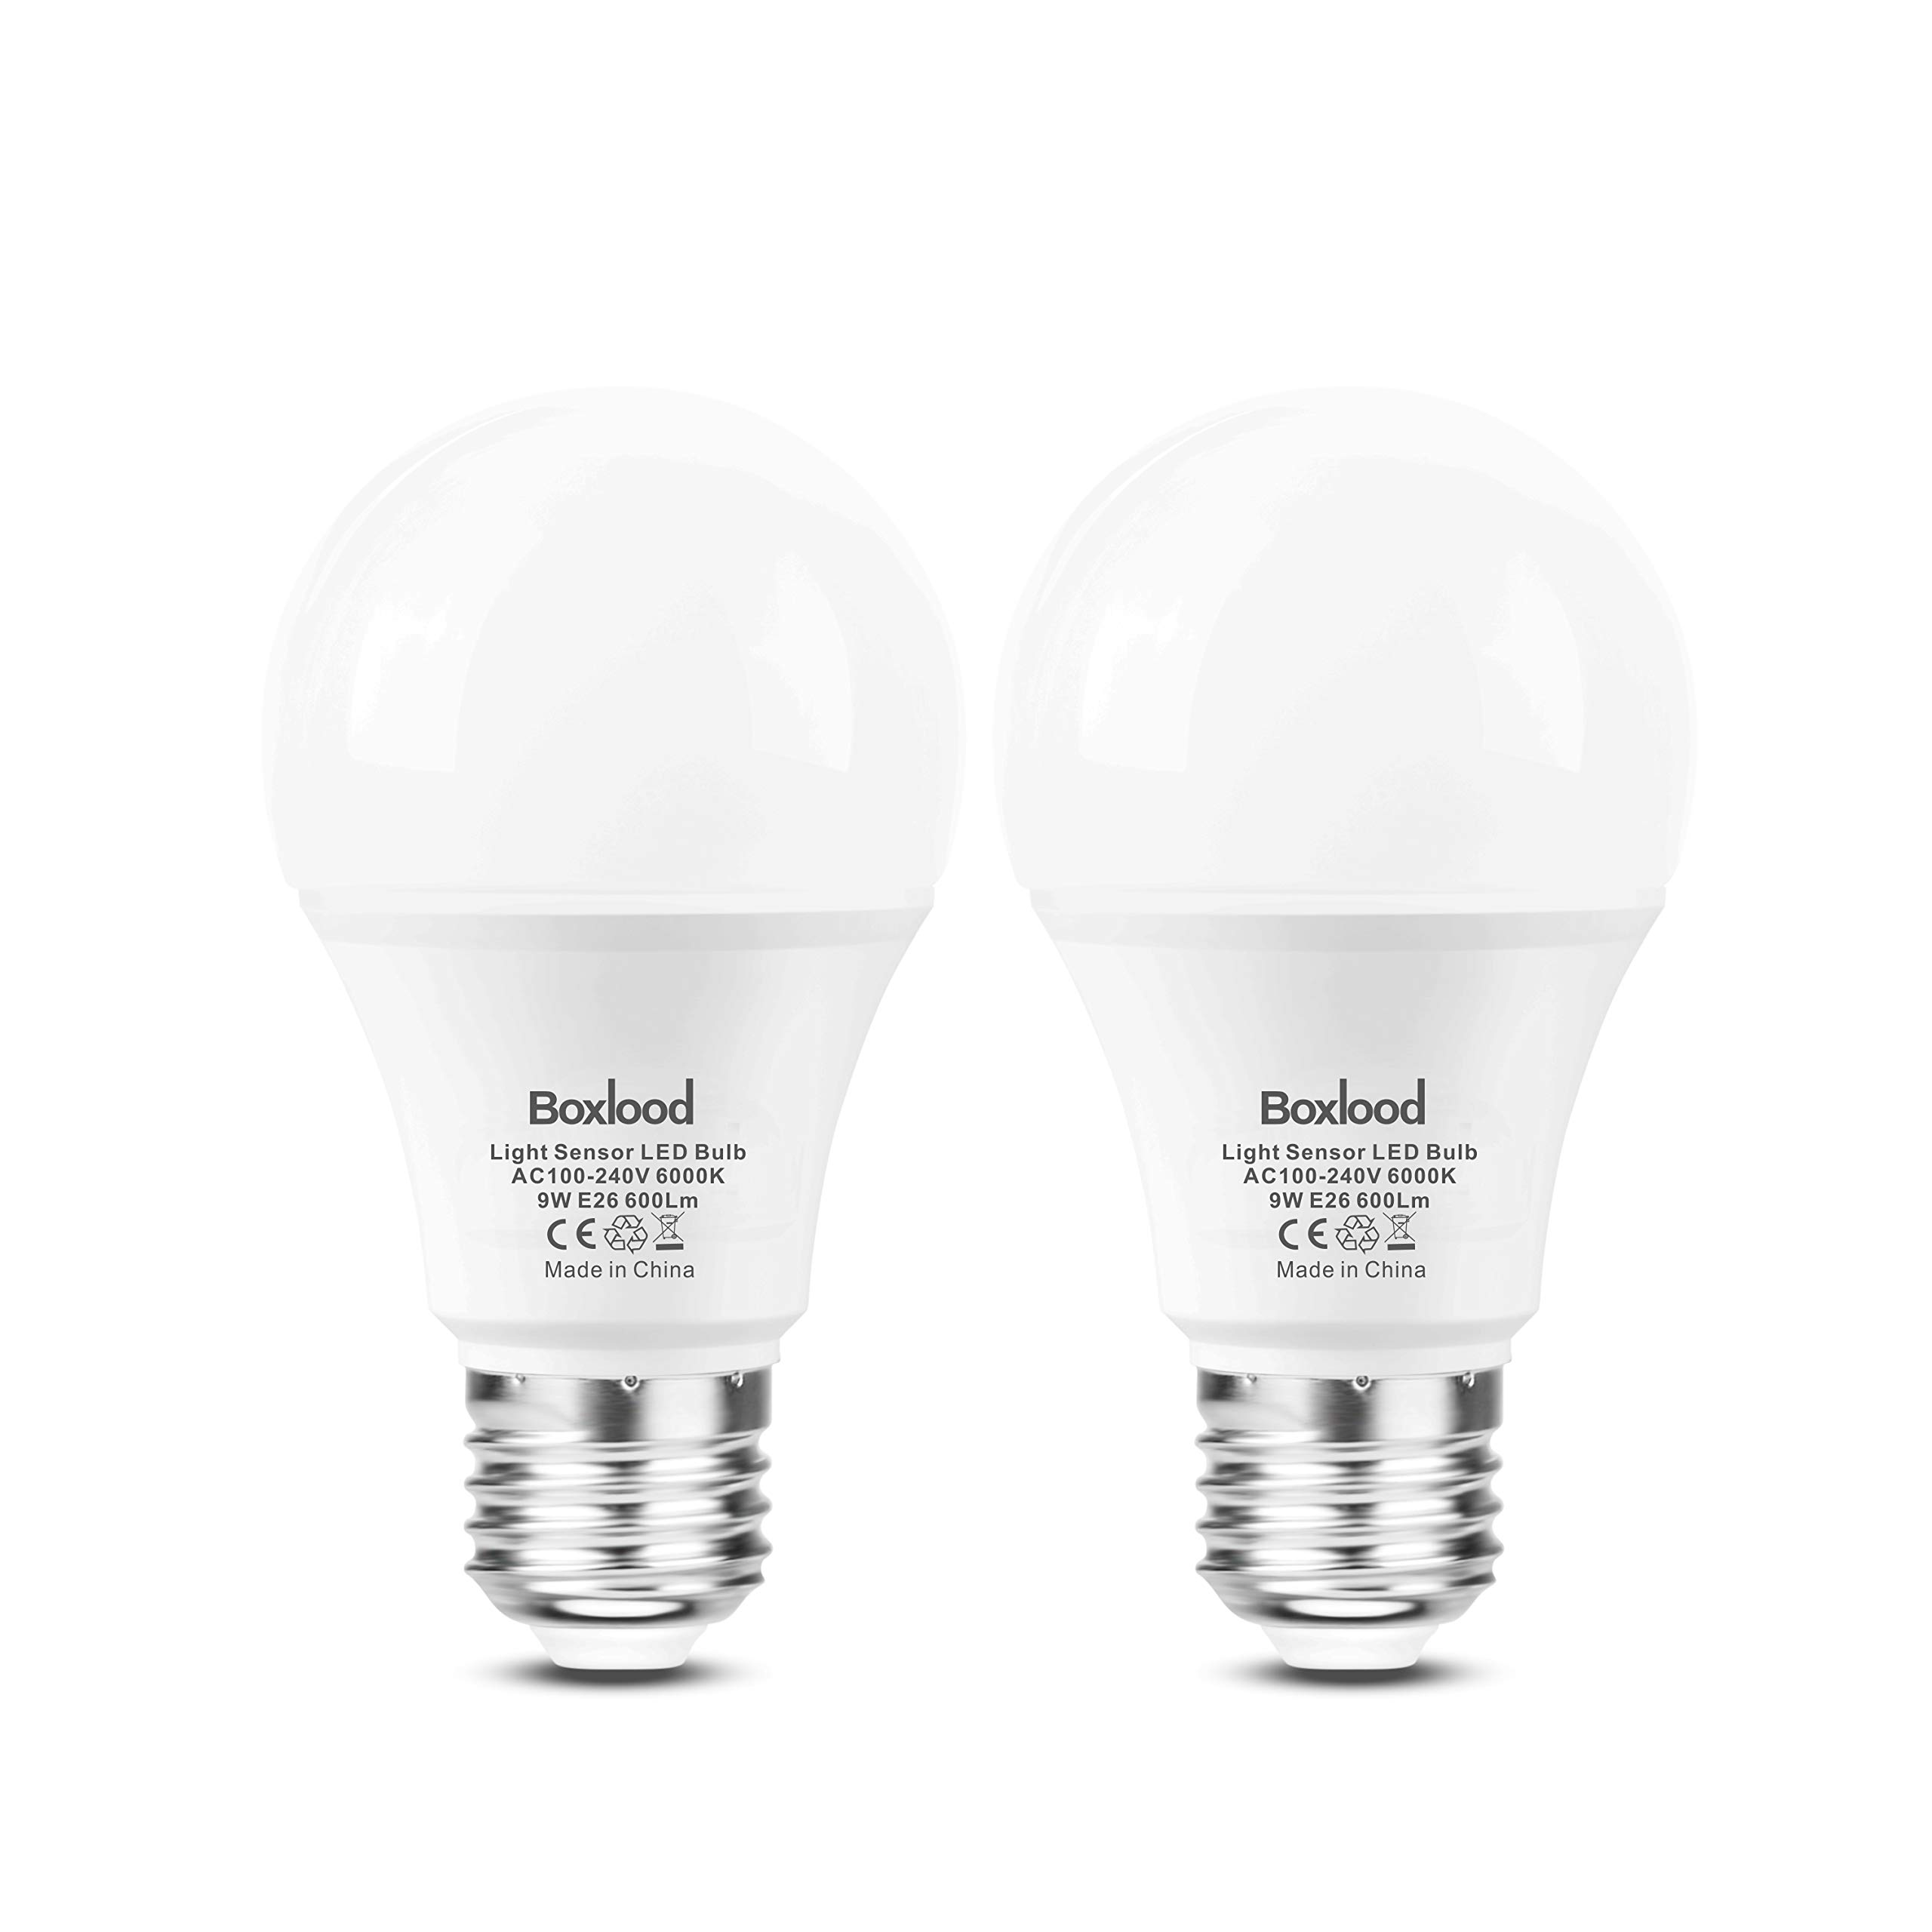 Dusk to Dawn A19 LED Light Bulb, Built in Light Sensor, Plug and Play, 90% Energy Saving, 6000K Cool White, 60W Halogen Equivalent, E26, AC120V, Auto On/Off Lighting Bulb (2 Pack) by Boxlood